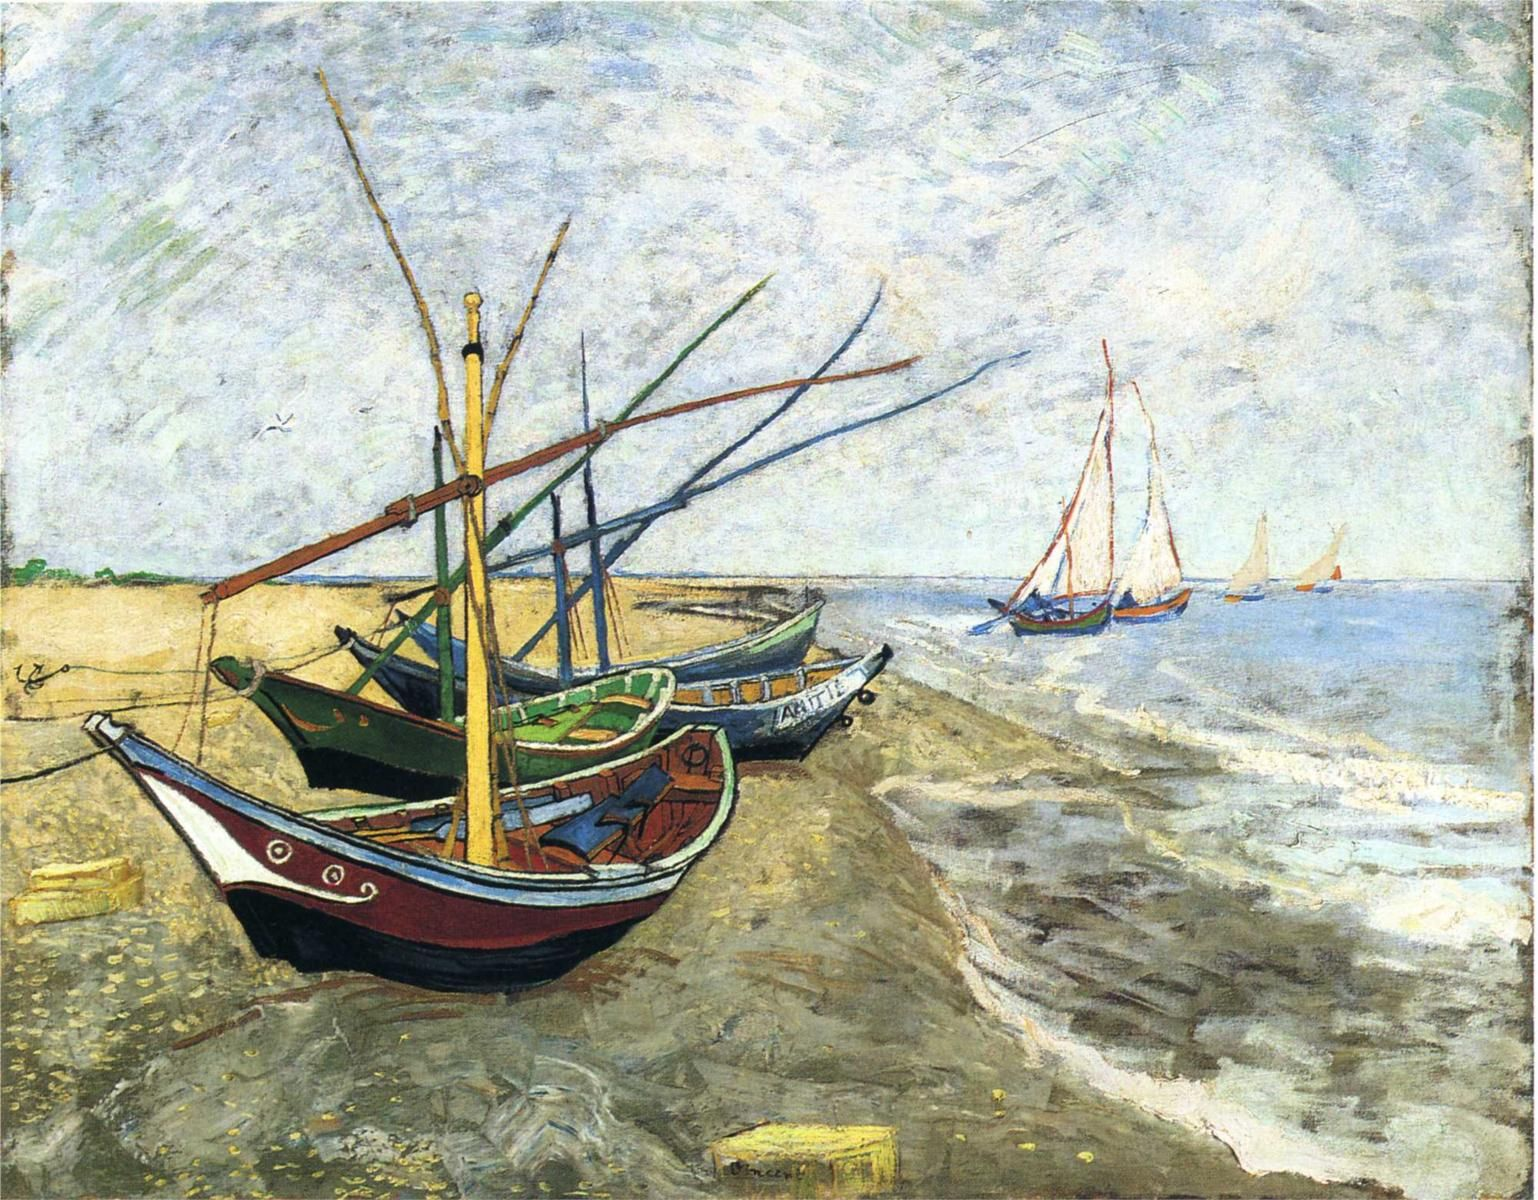 Page: Fishing boats on the Beach at Les Saintes-Maries-de-la-Mer Artist: Vincent van Gogh Completion Date: 1888 Place of Creation: Saintes-maries-de-la-mer, France Style: Post-Impressionism Genre: marina Technique: oil Material: canvas Dimensions: 81.5 x 65 cm